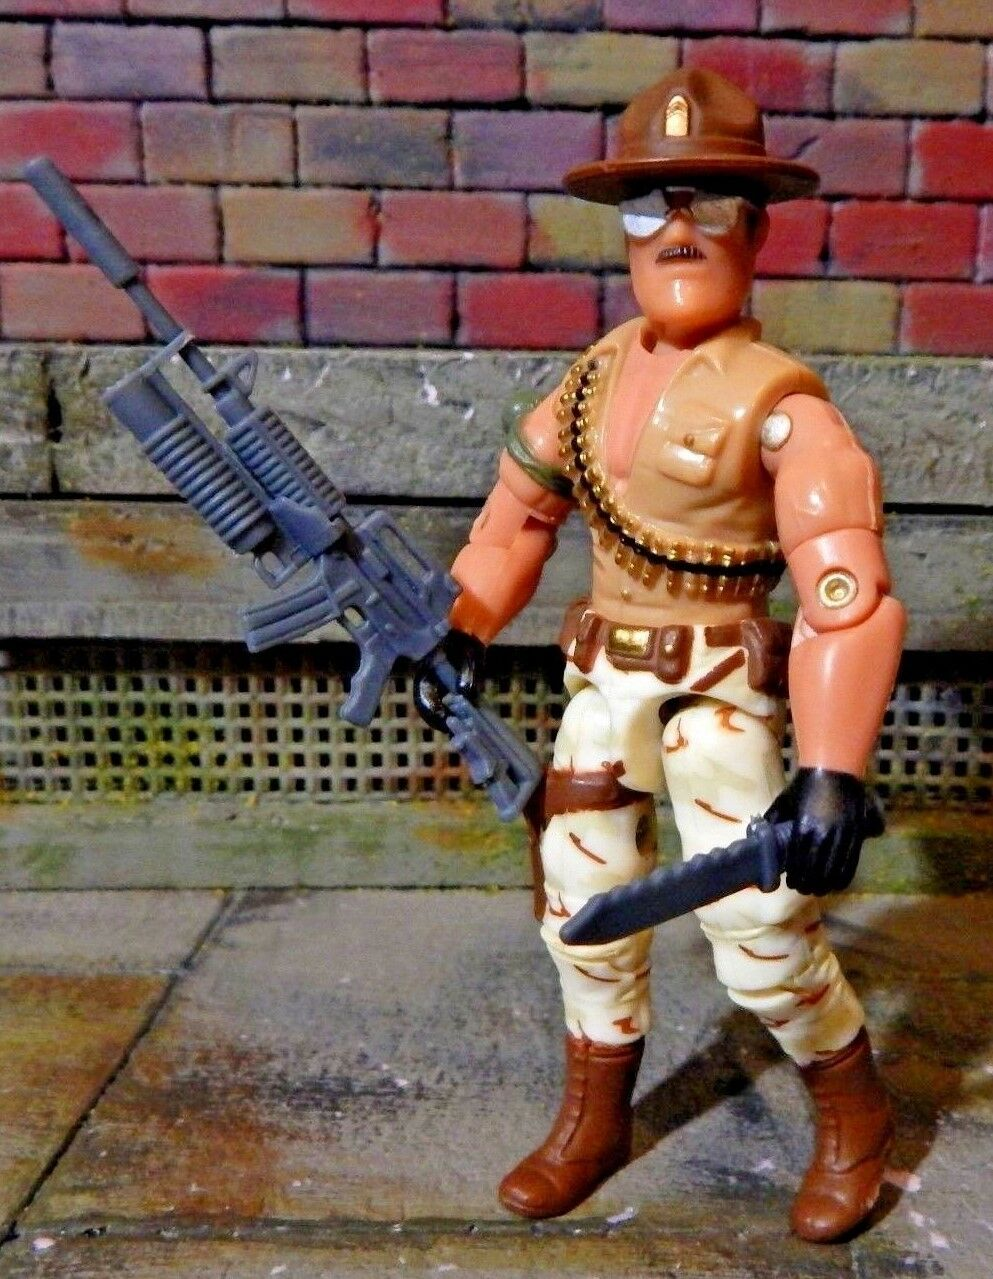 GI JOE   2006 SGT SLAUGHTER  CONVENTION JOECON  100% complete 1985 1986  meilleure mode